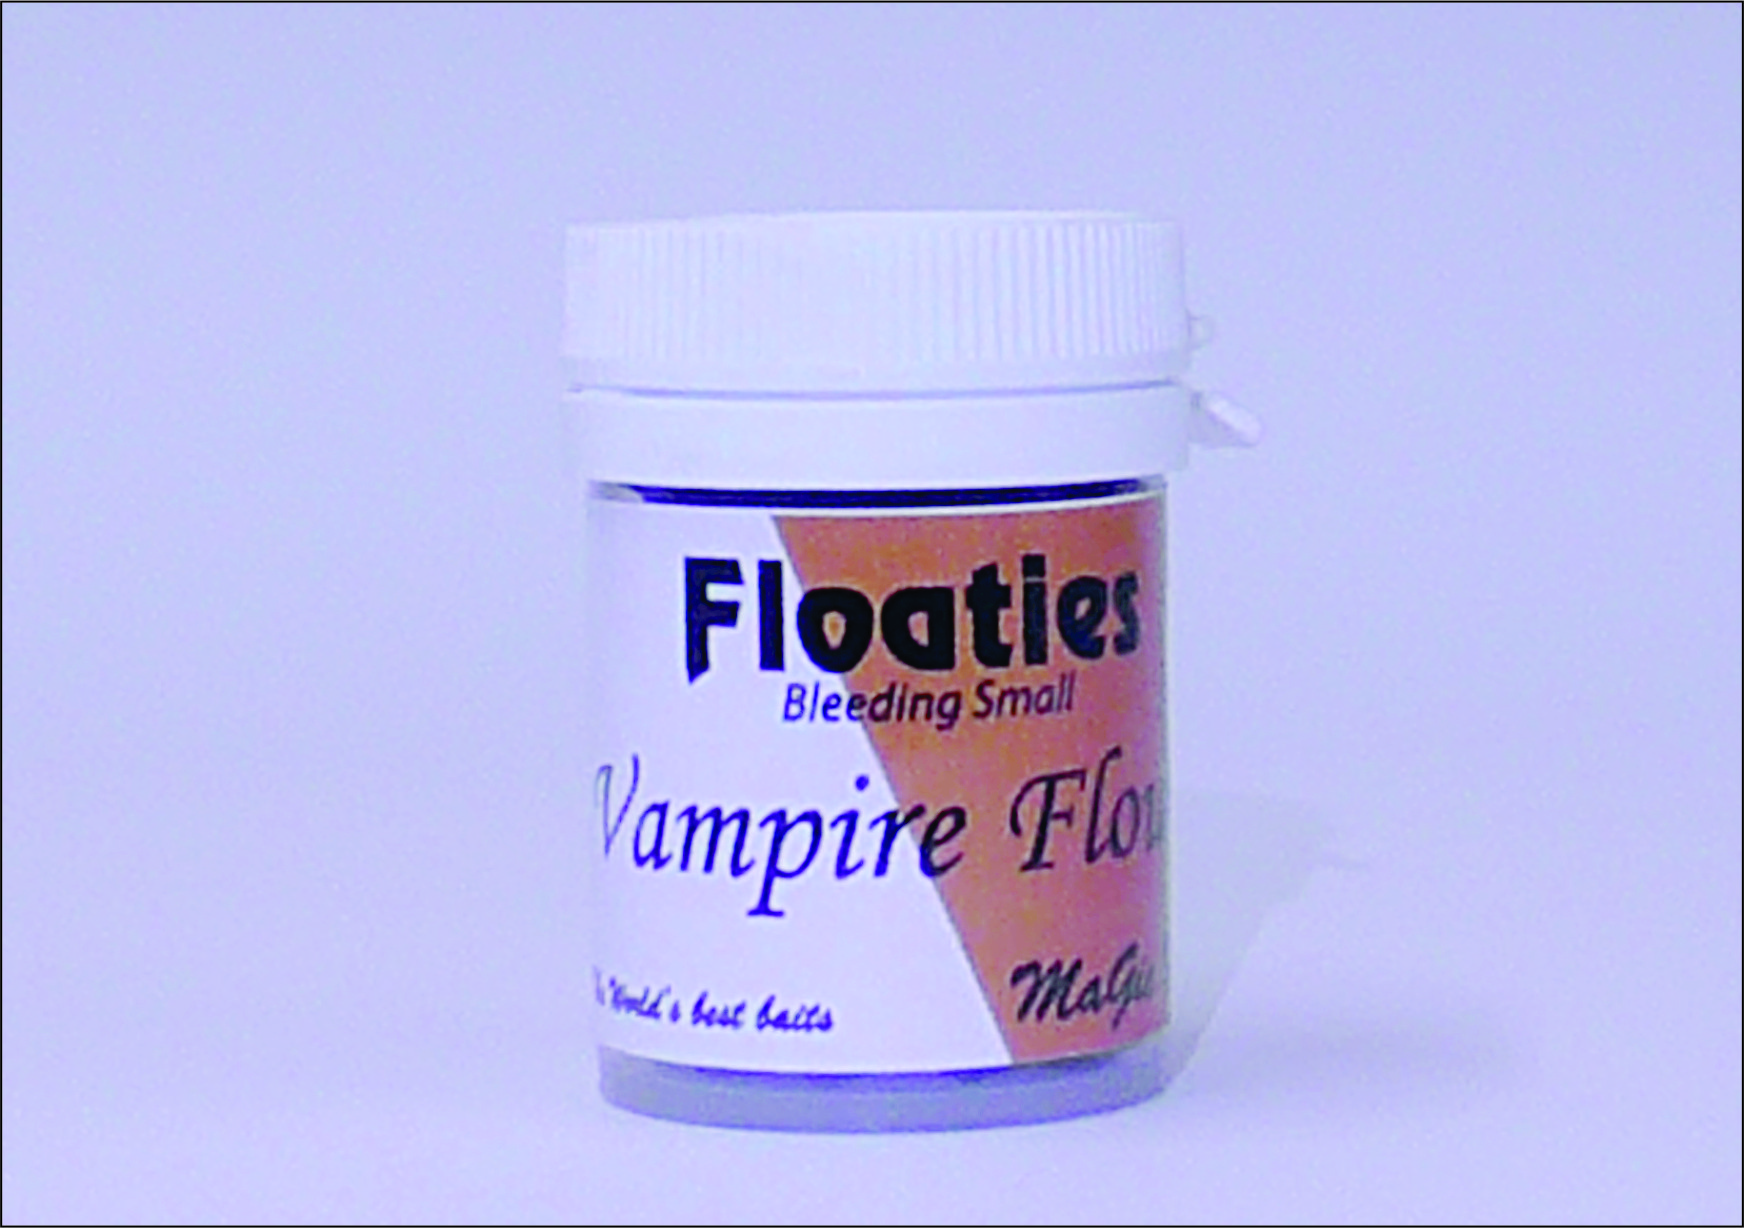 Vampire Flouro Small Bleeding Floaties